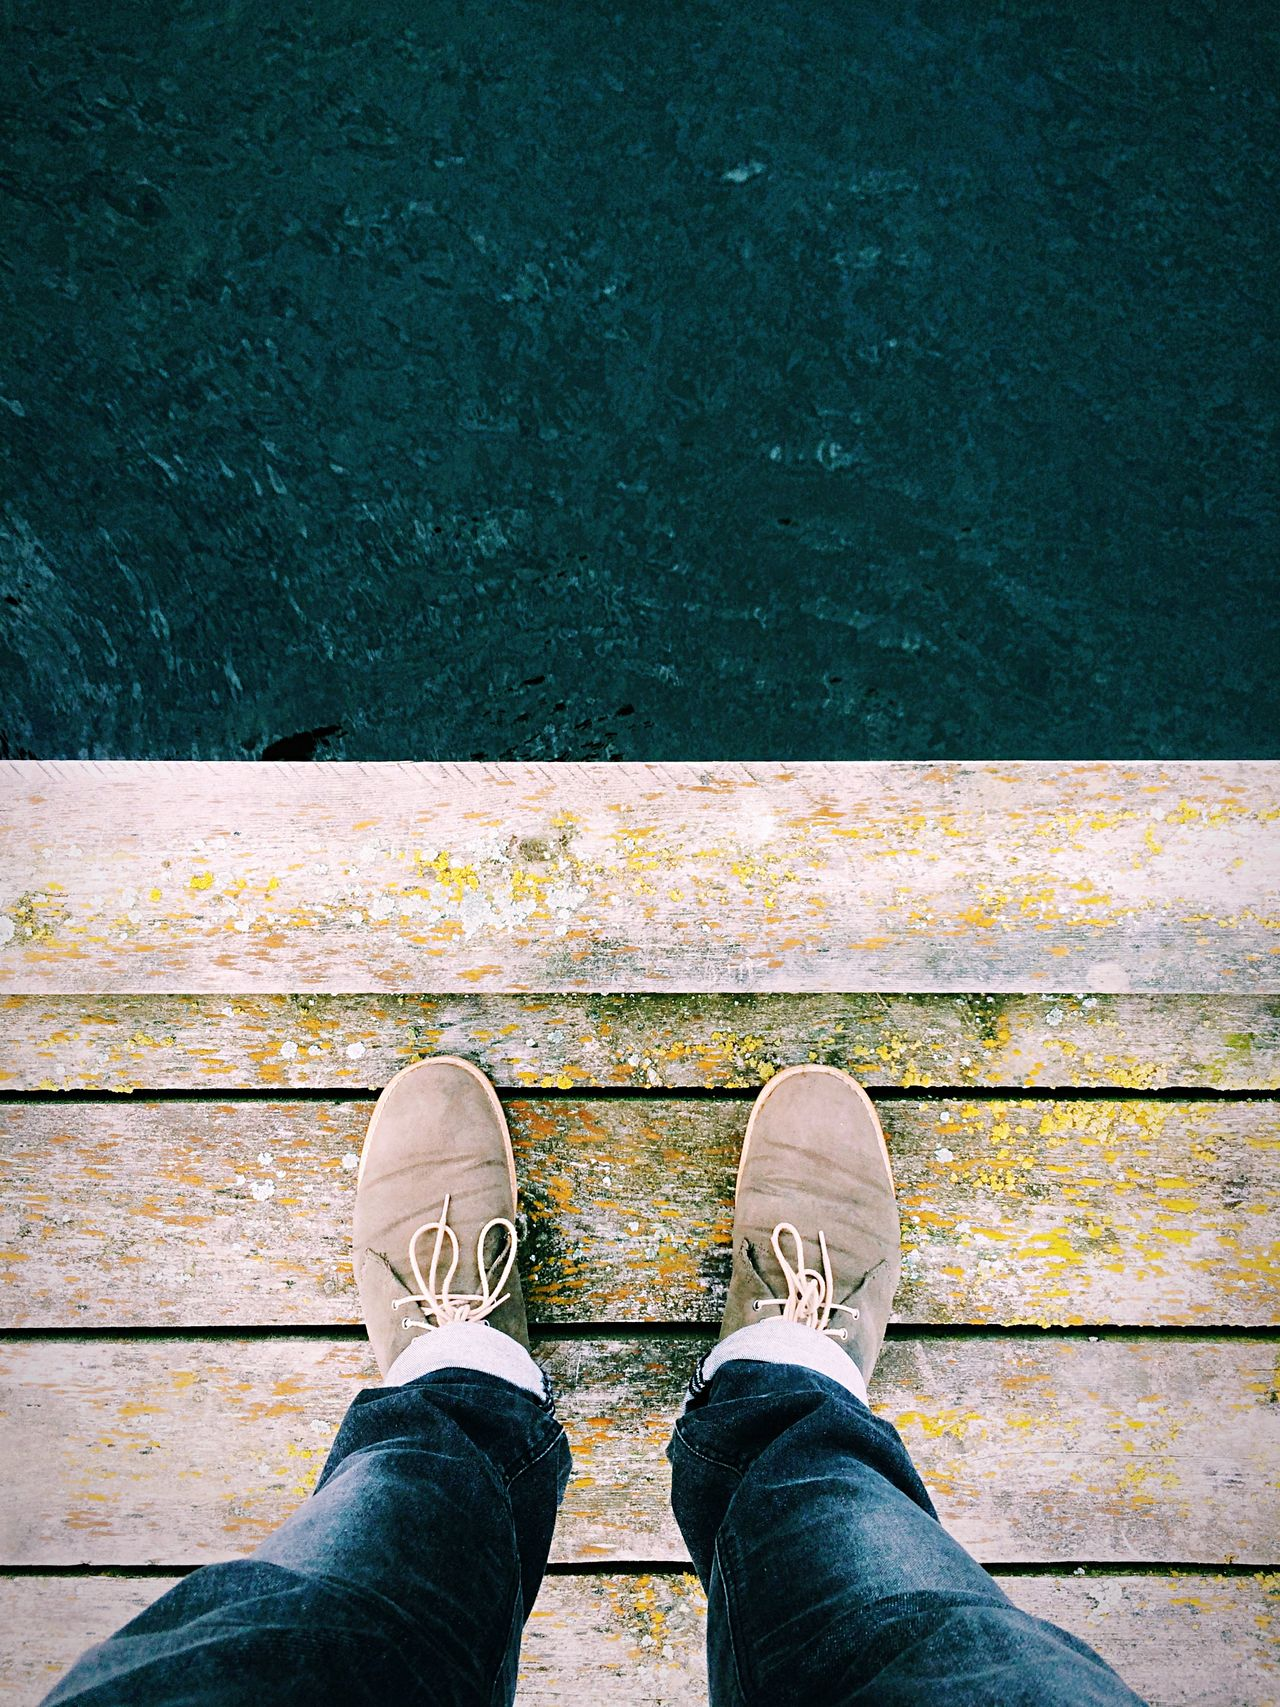 Do not jump in the water! Water_collection Feet Shoes EyeEm Best Shots Lines Docks